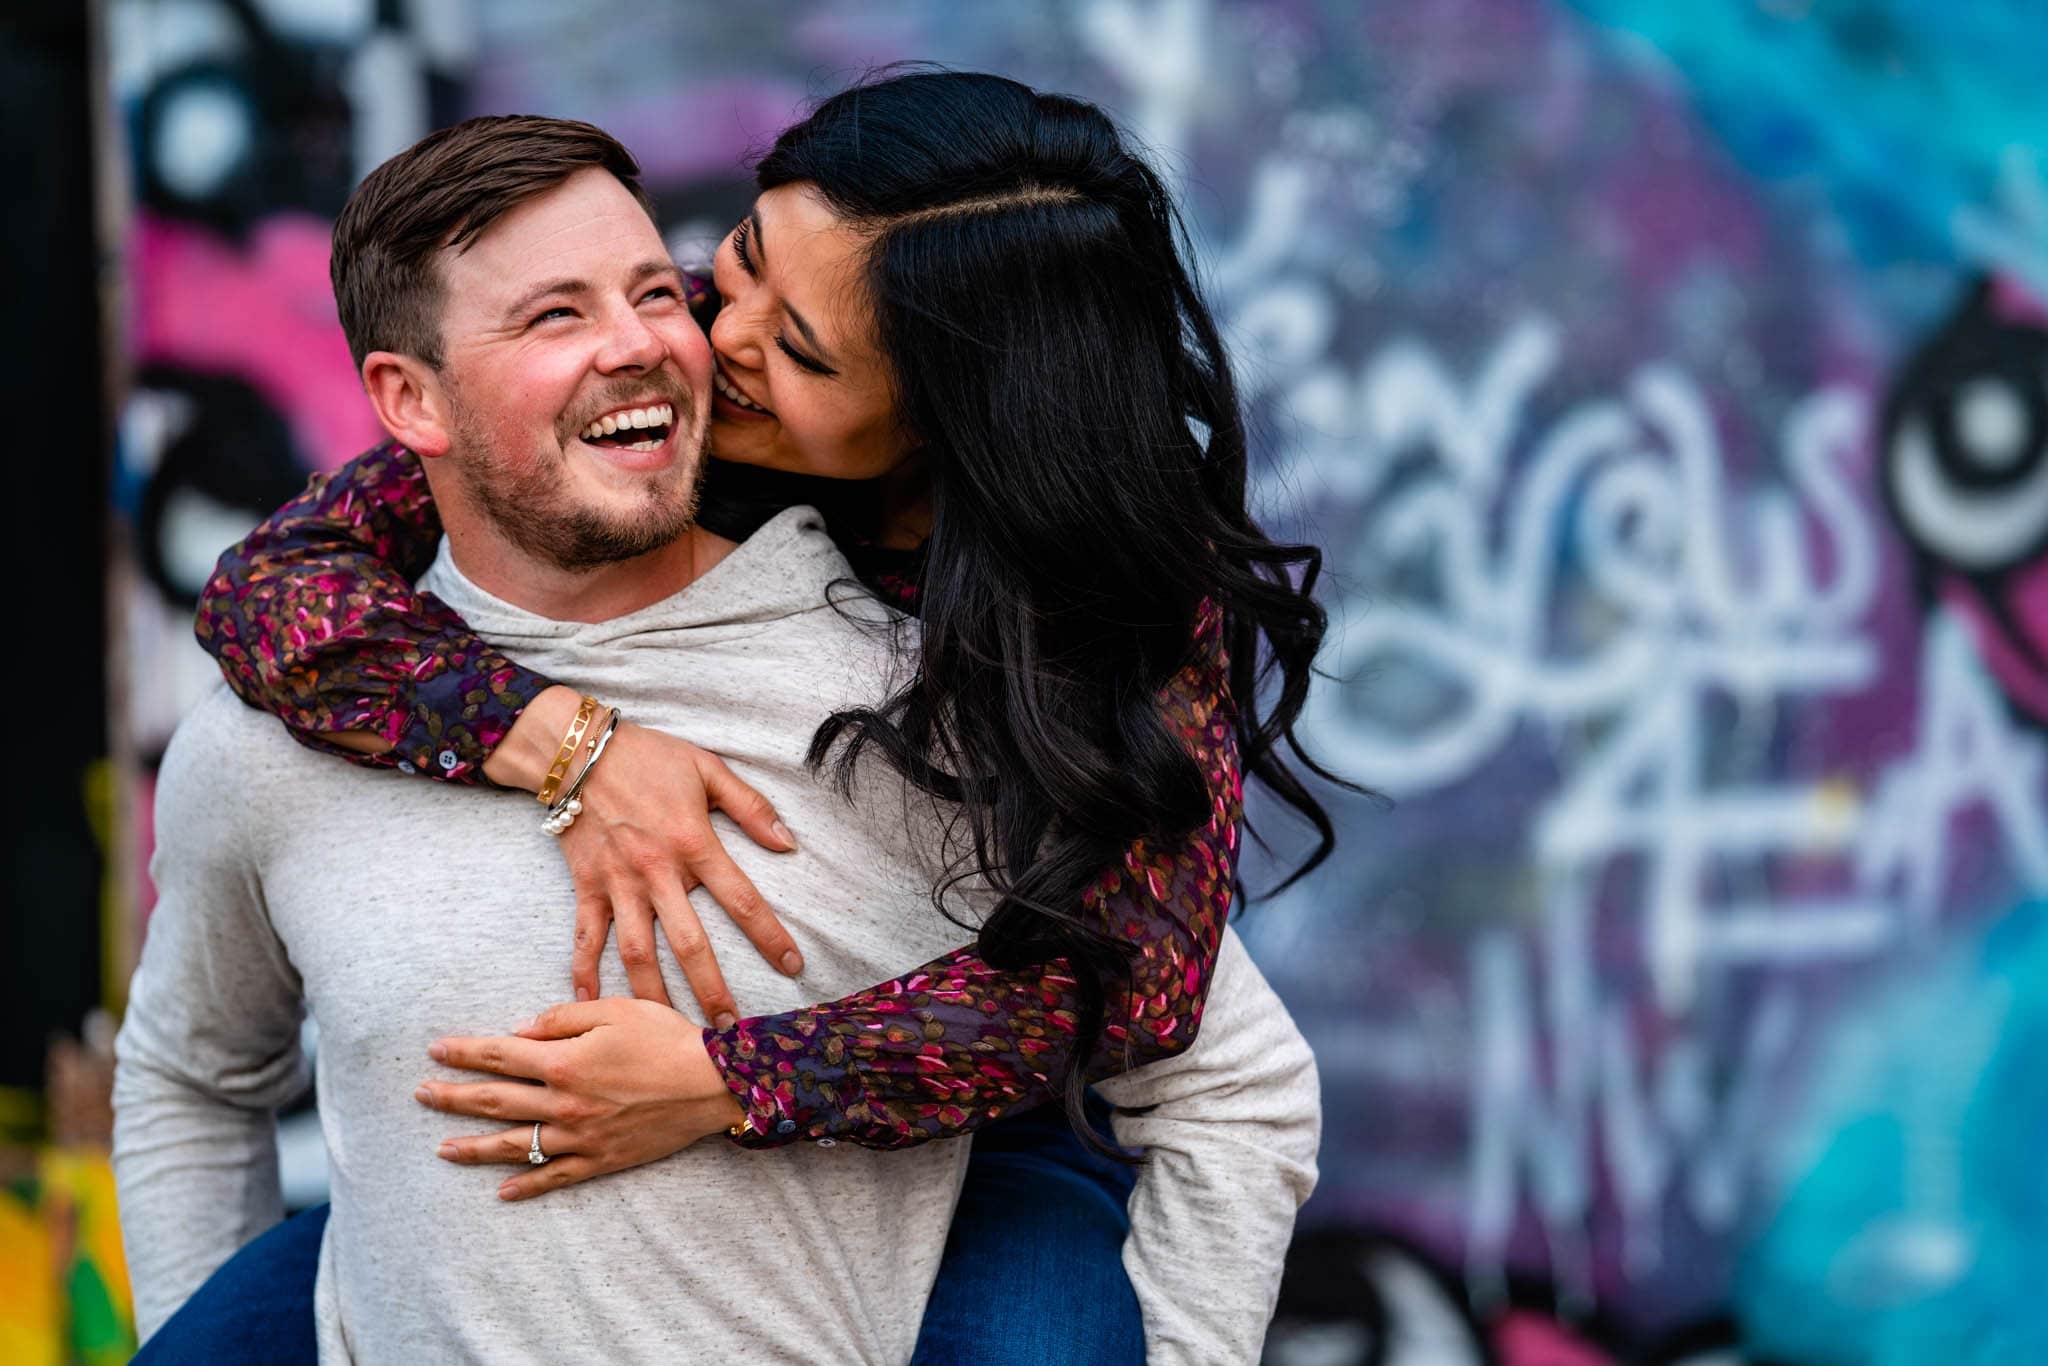 Woman hops on man's back and gives him a kiss as the man smiles. They are in front of a graffiti wall in Downtown Dayton, Ohio, having their engagement session photographed.